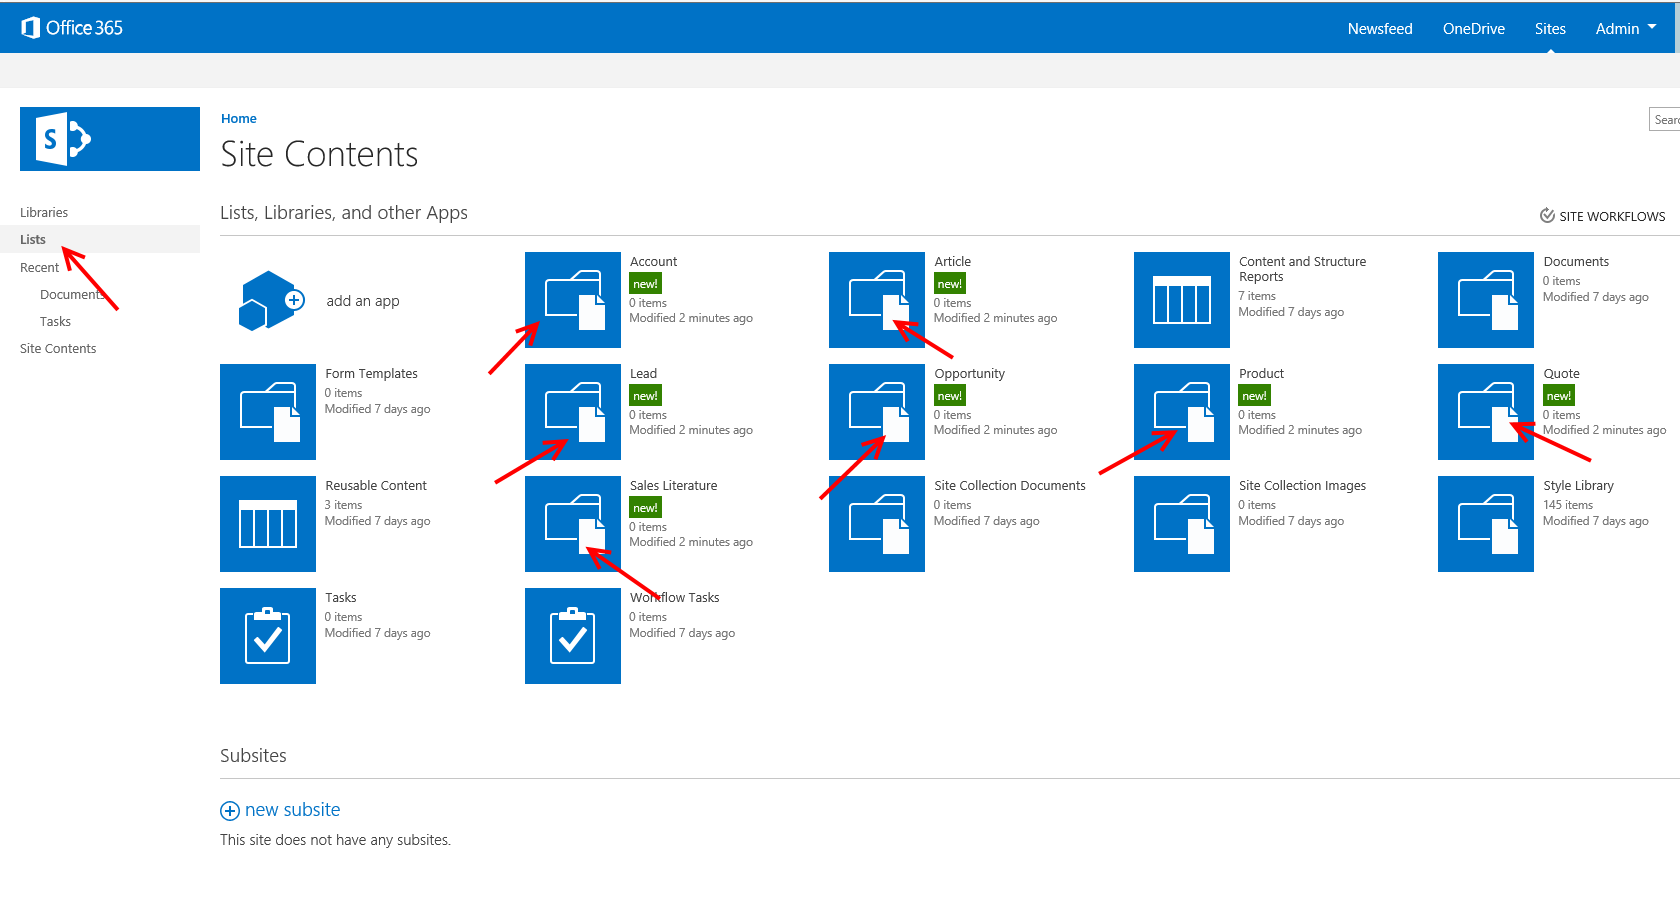 Office 365 Site Contents